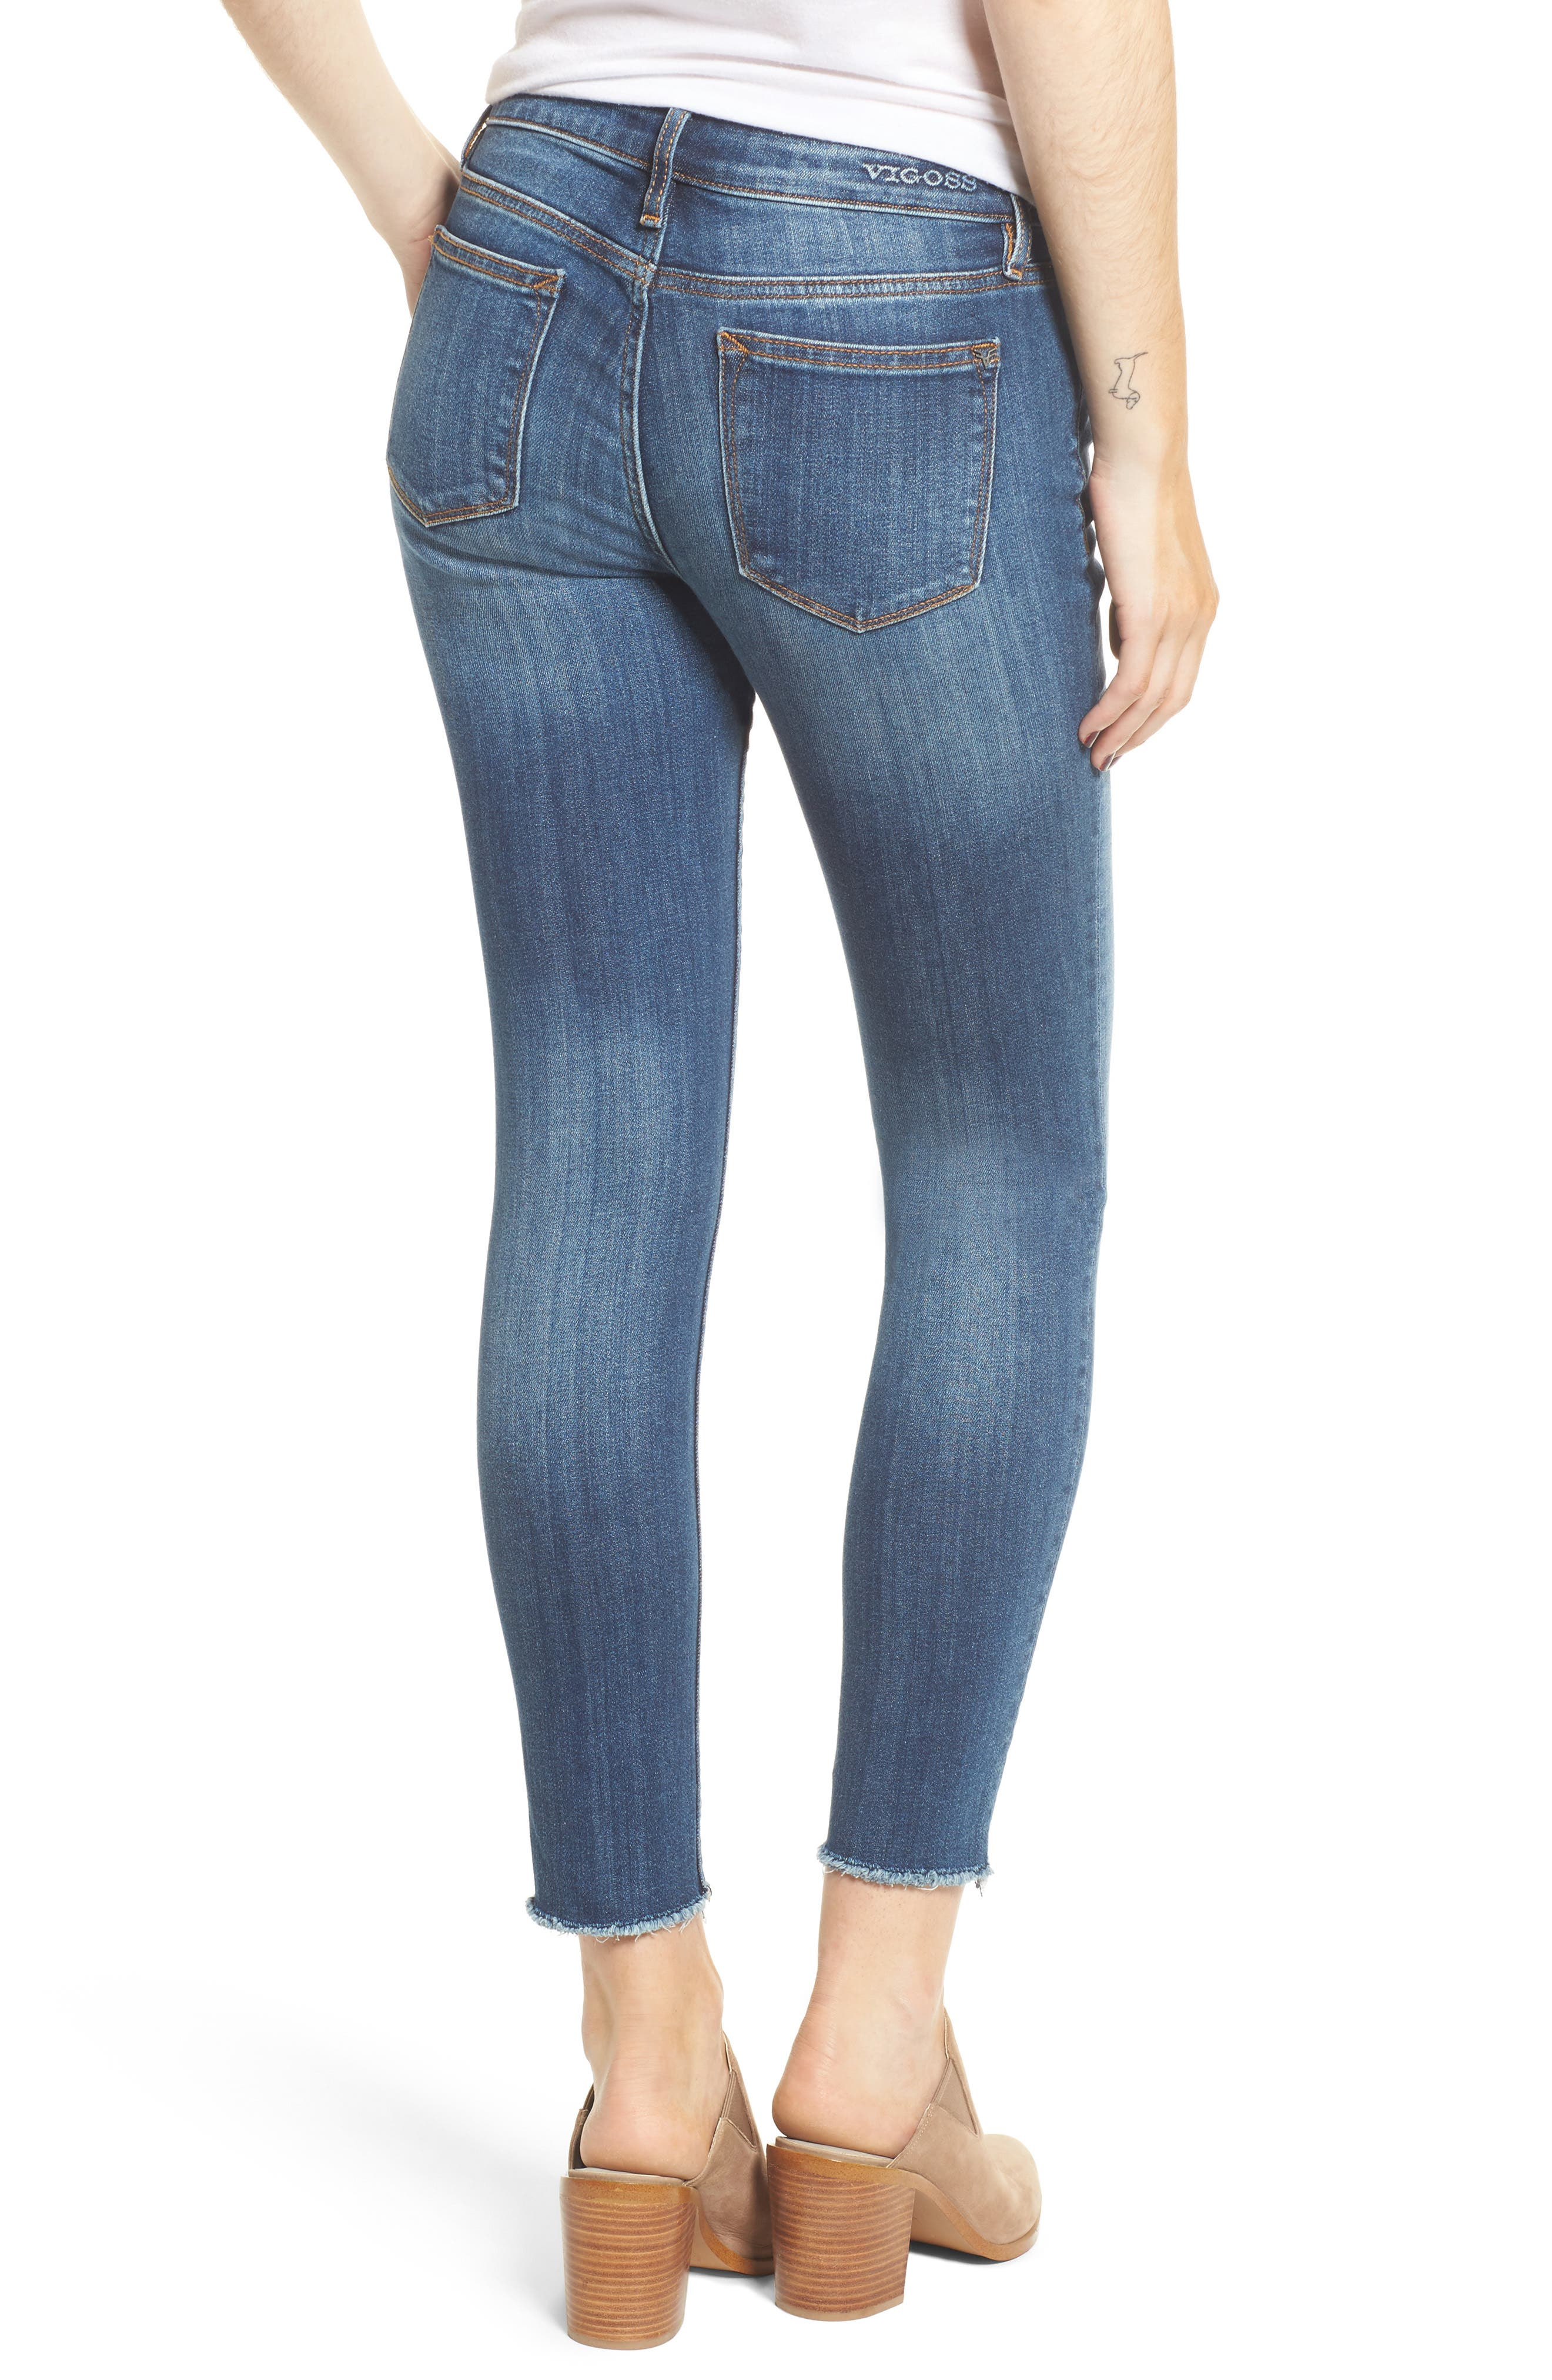 Jagger Mid-Rise Skinny Jeans,                             Alternate thumbnail 2, color,                             Med Wash